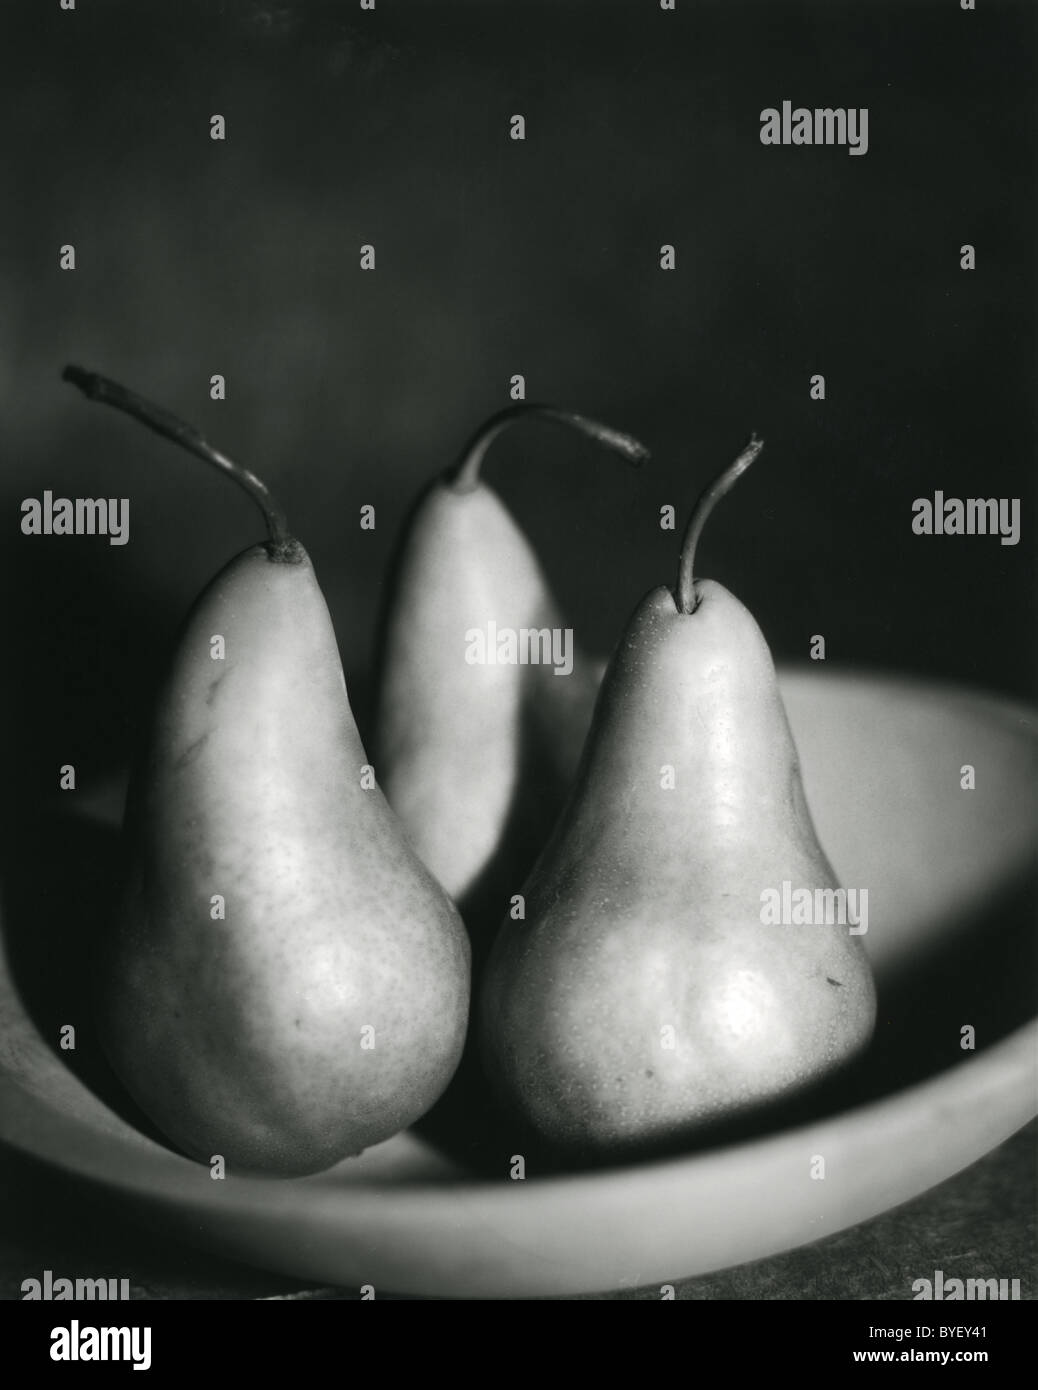 black and white photo of three pears in a wooden bowl - Stock Image